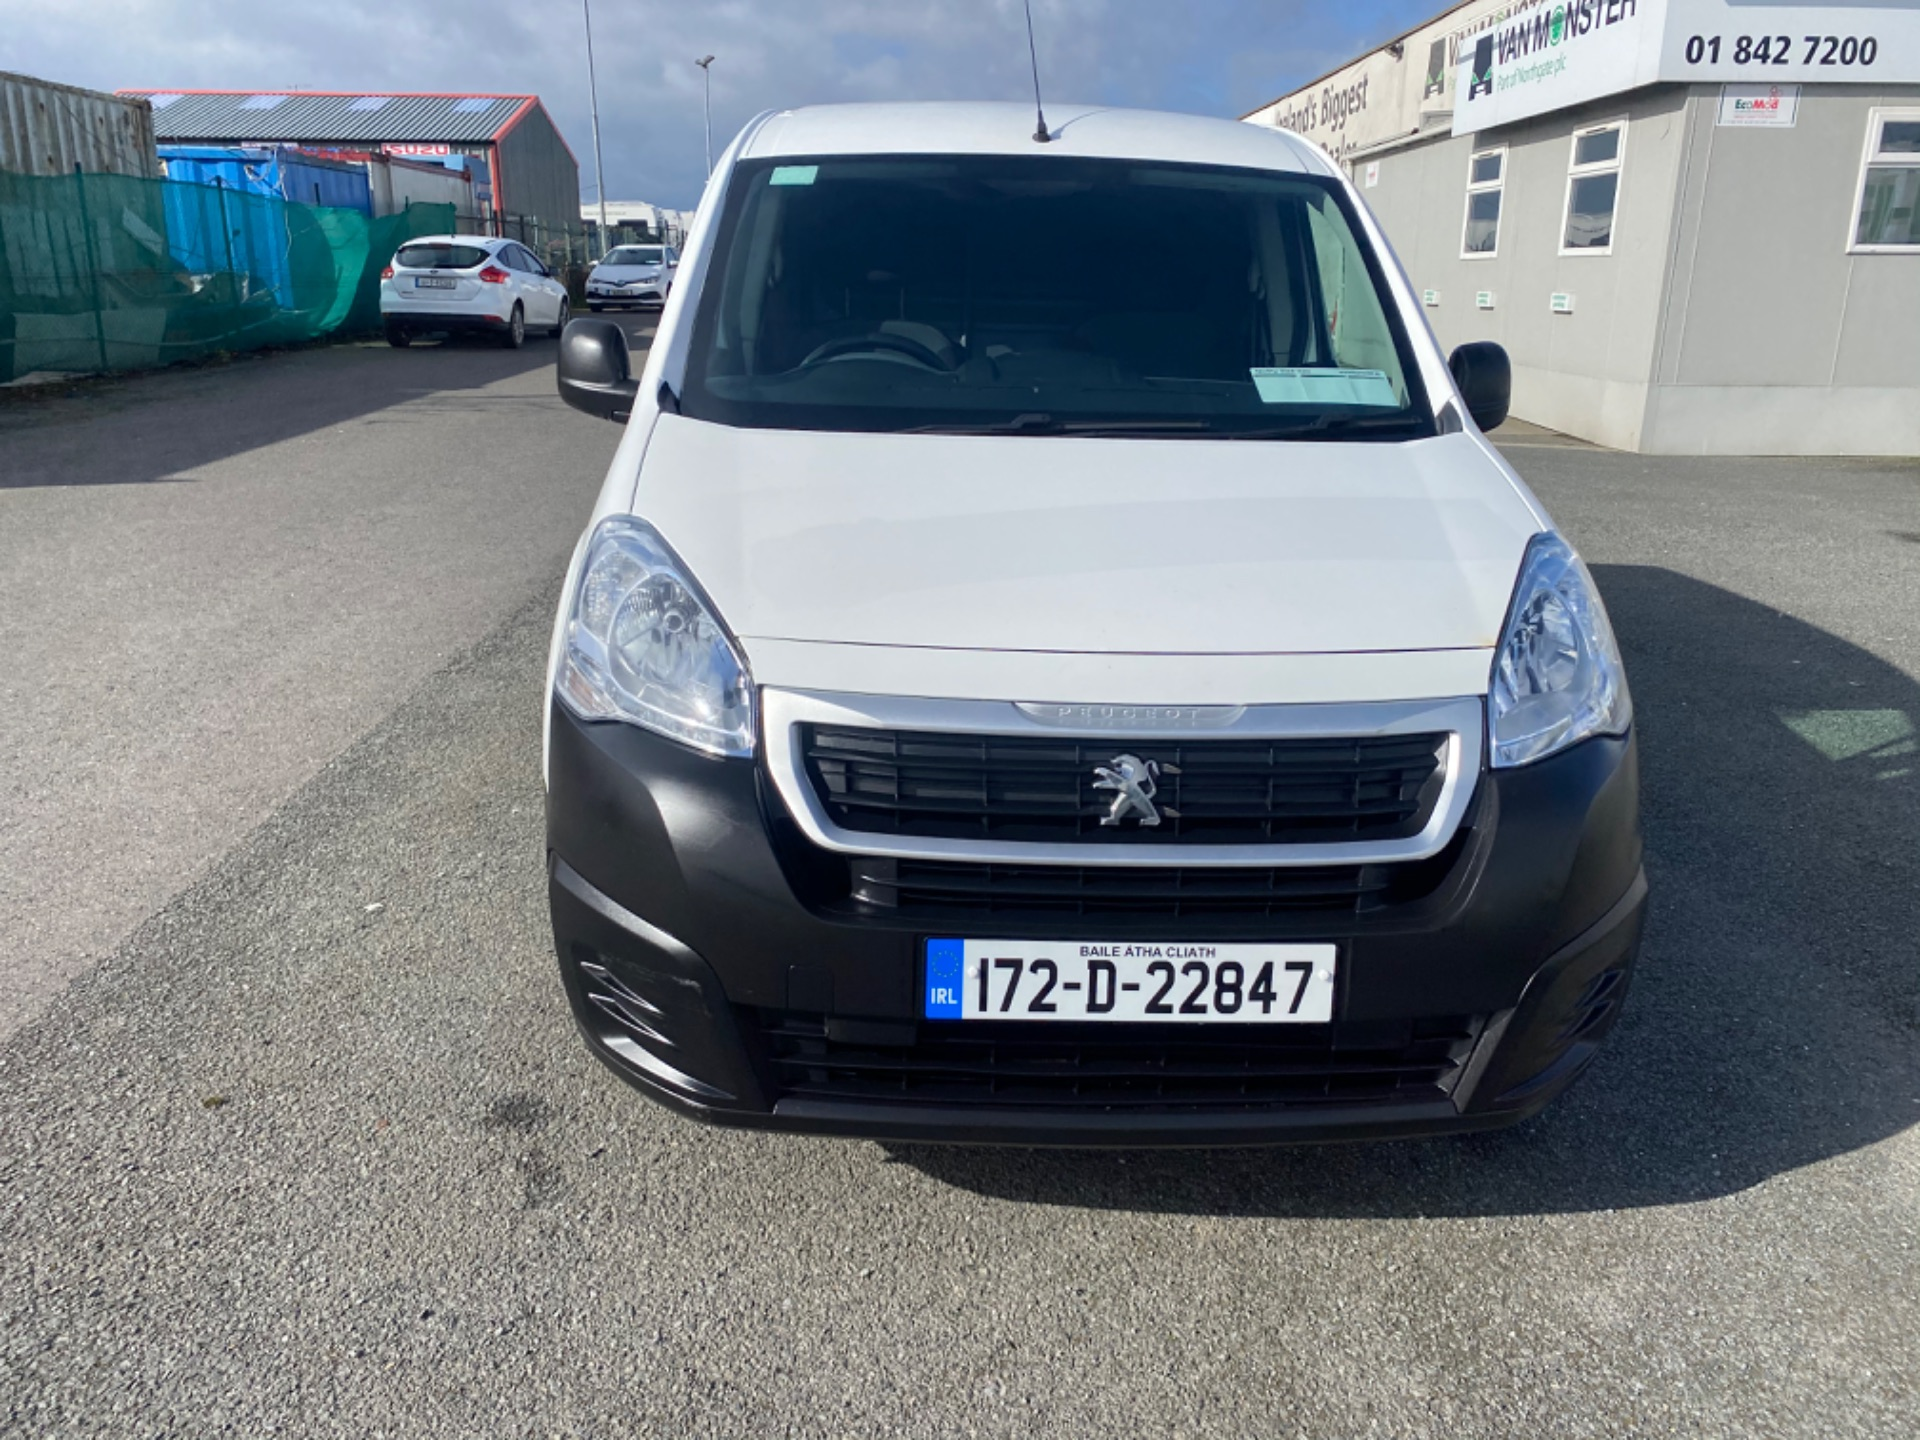 2017 Peugeot Partner Access 1.6 Blue HDI 75 Side DO (172D22847) Image 2